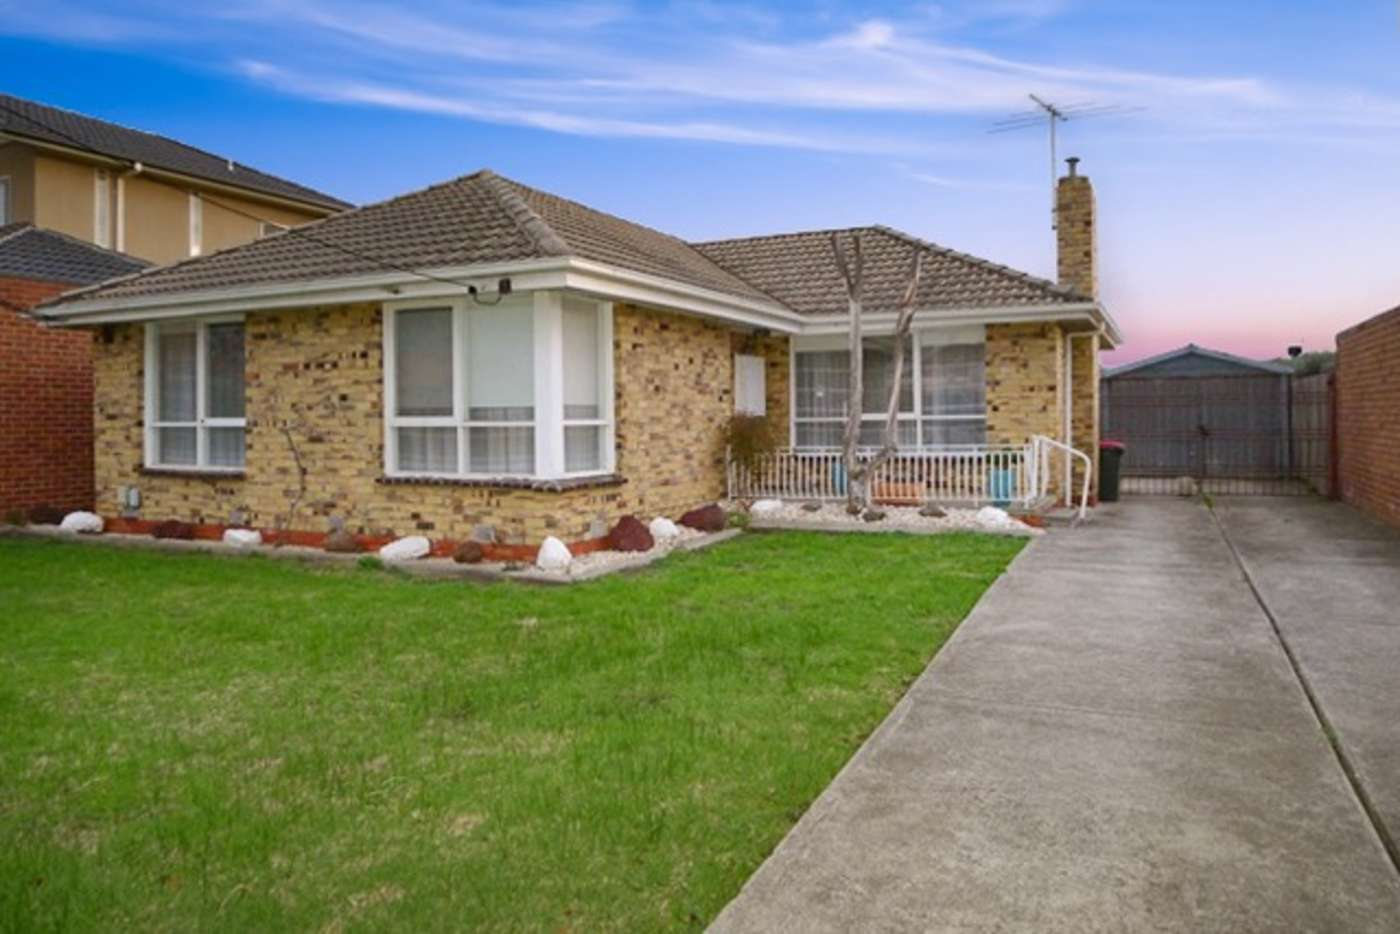 Main view of Homely house listing, 35 Highlands Avenue, Airport West VIC 3042